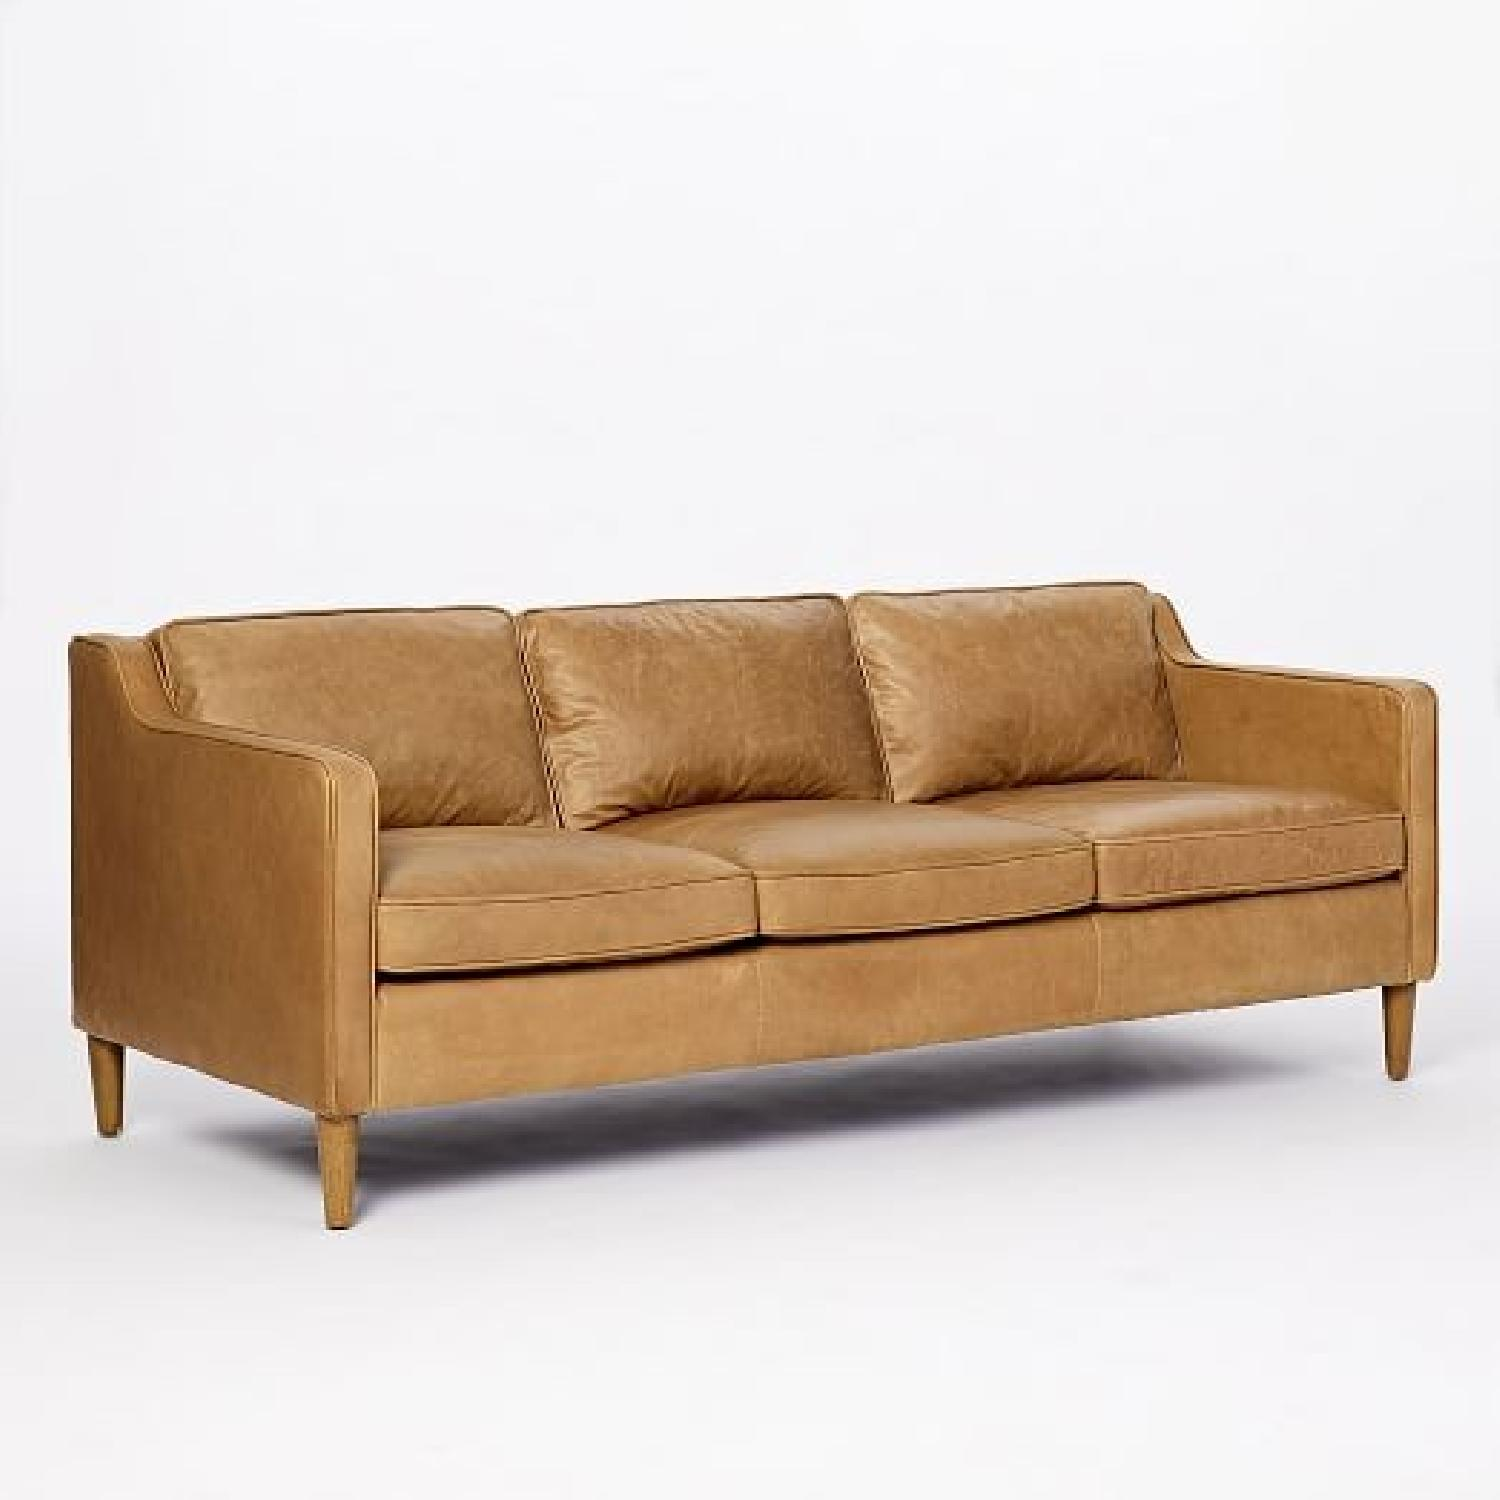 West Elm Hamilton Sienna Leather Sofa In Tan Color ...